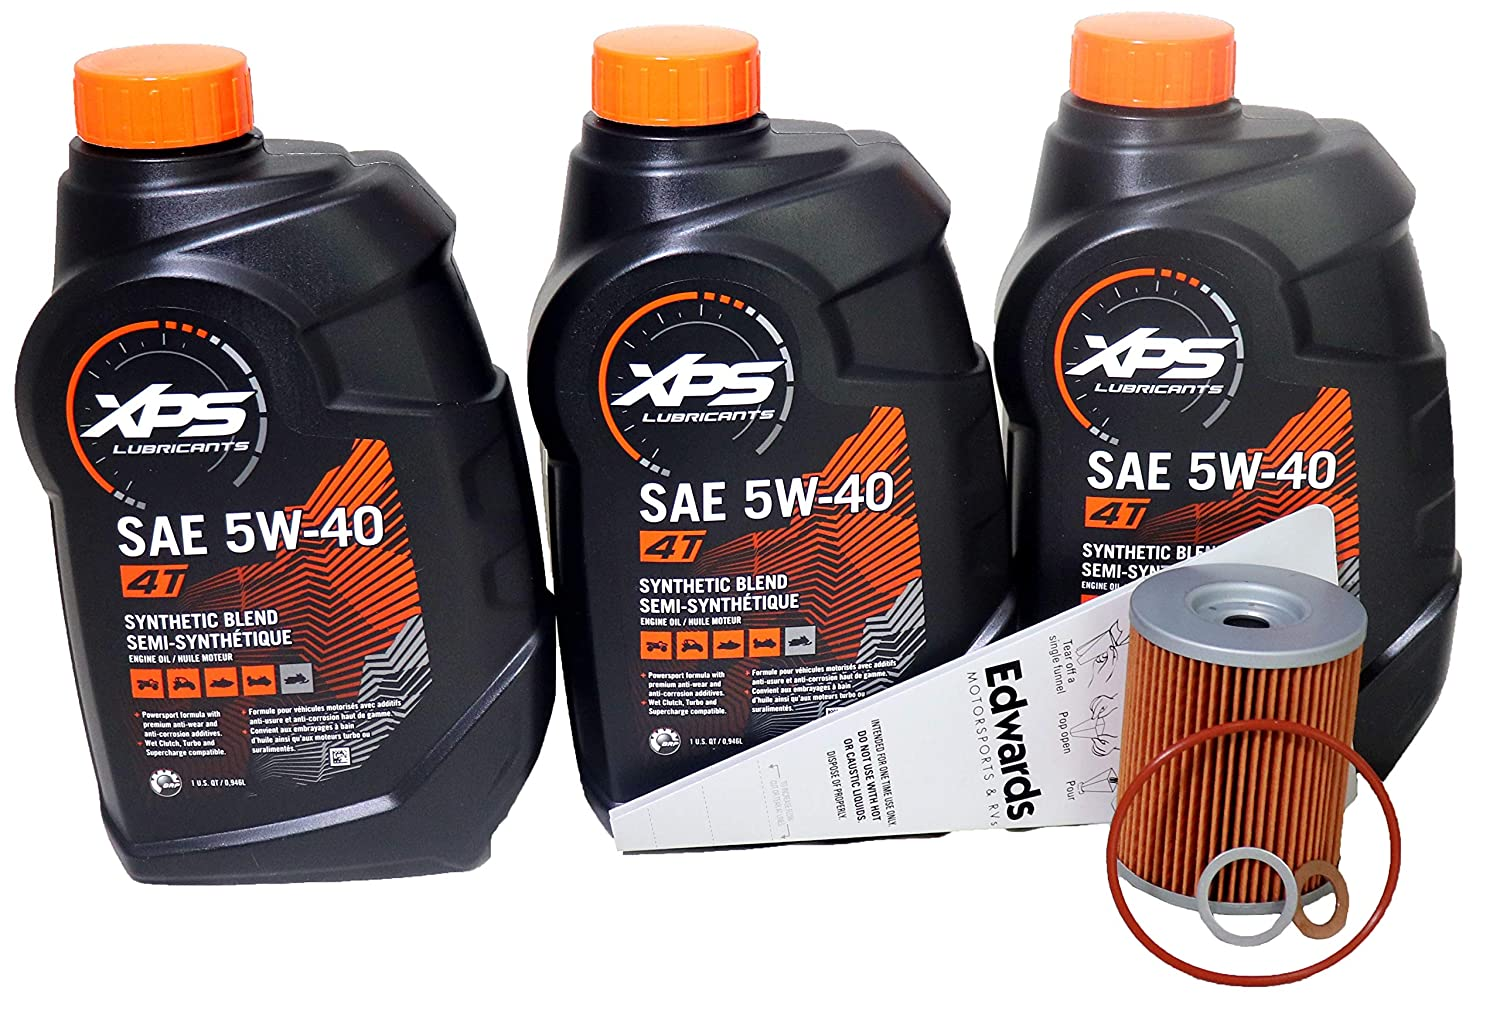 Synthetic Oil Change >> Amazon Com Can Am Xps 4 Stroke Semi Synthetic Oil Change